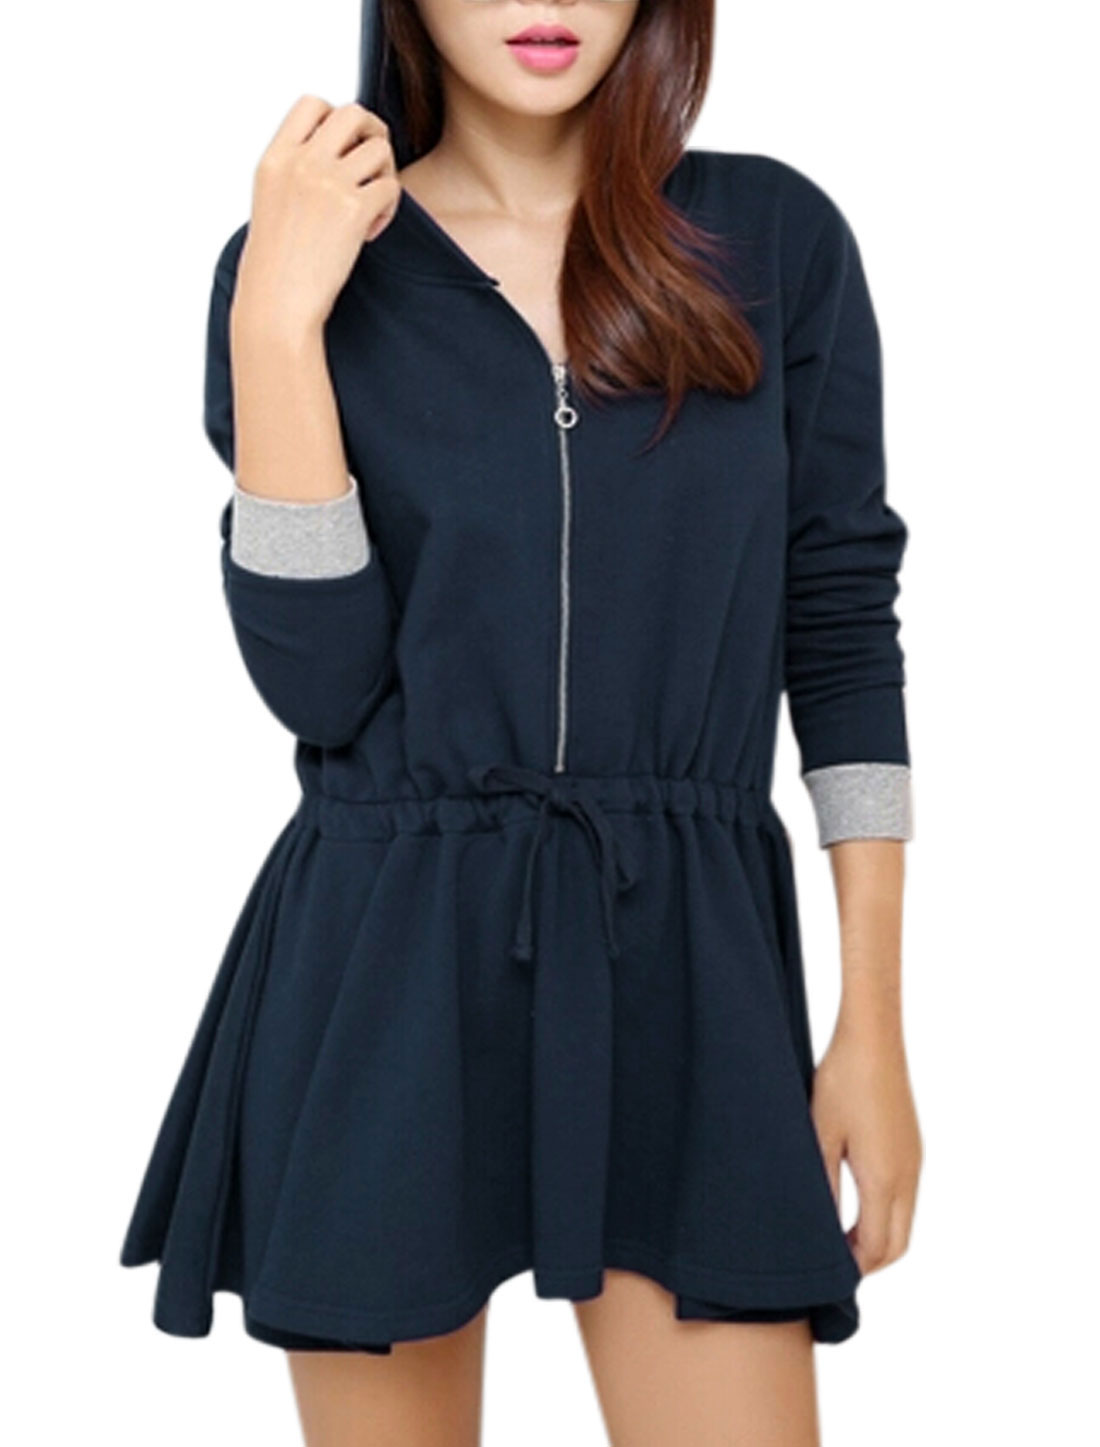 Lady Hooded Long-sleeved Zip Closure Casual Tunic Top Navy Blue S